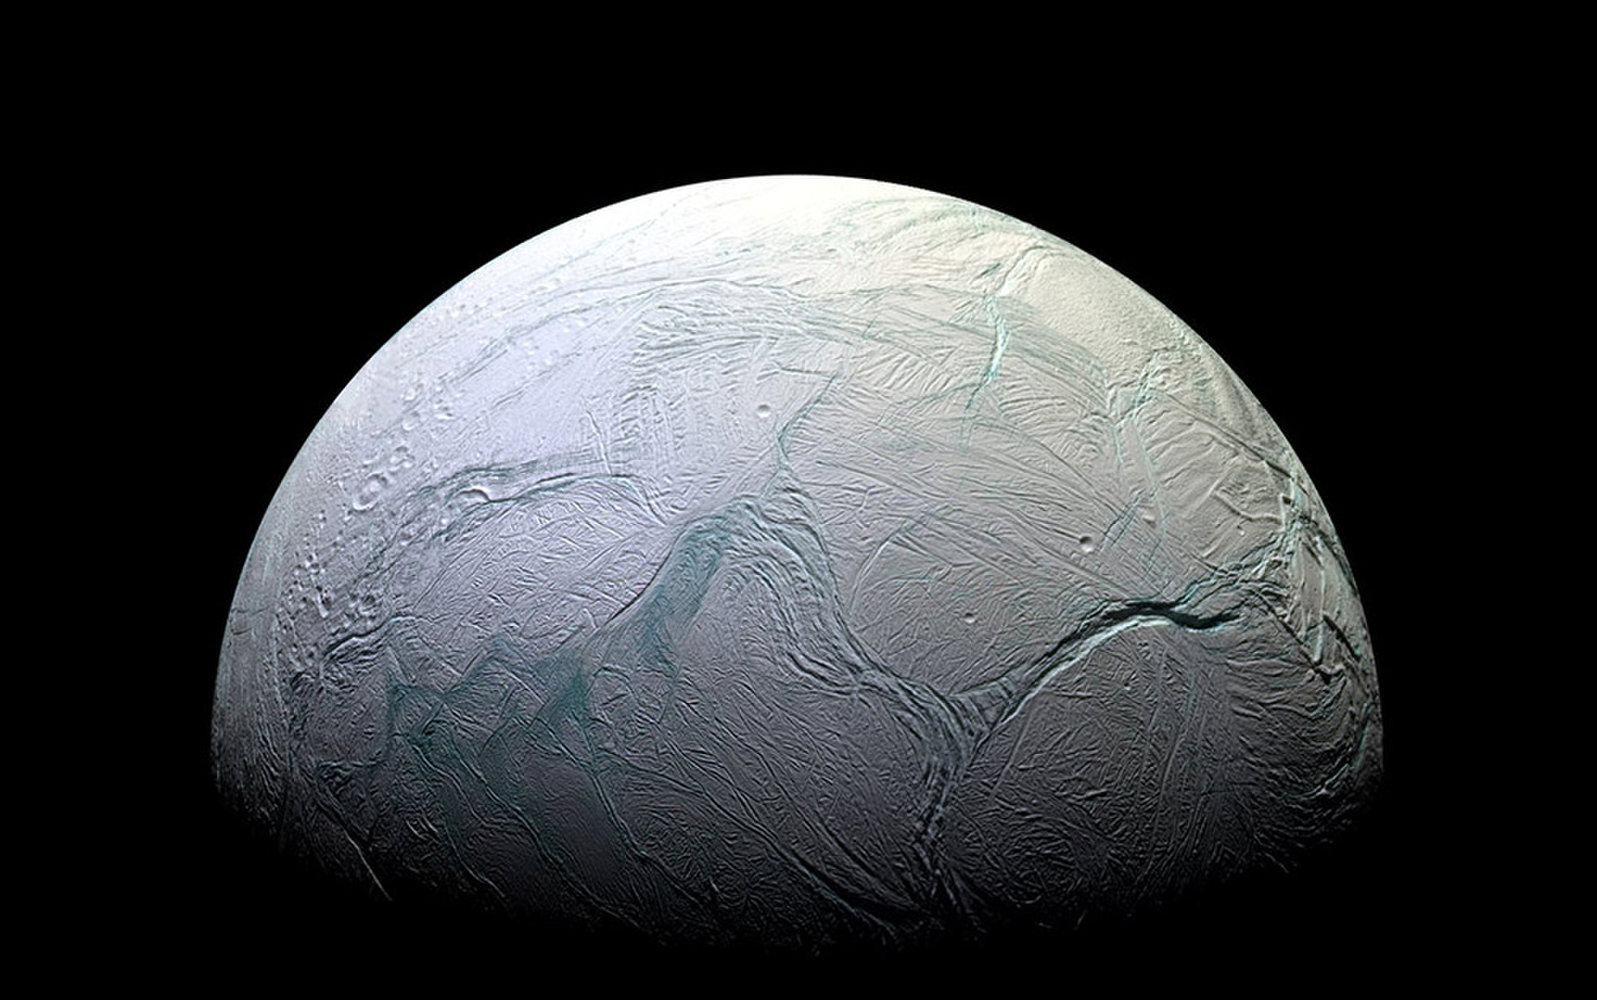 Life on Icy Alien Worlds May Resemble Creatures Under